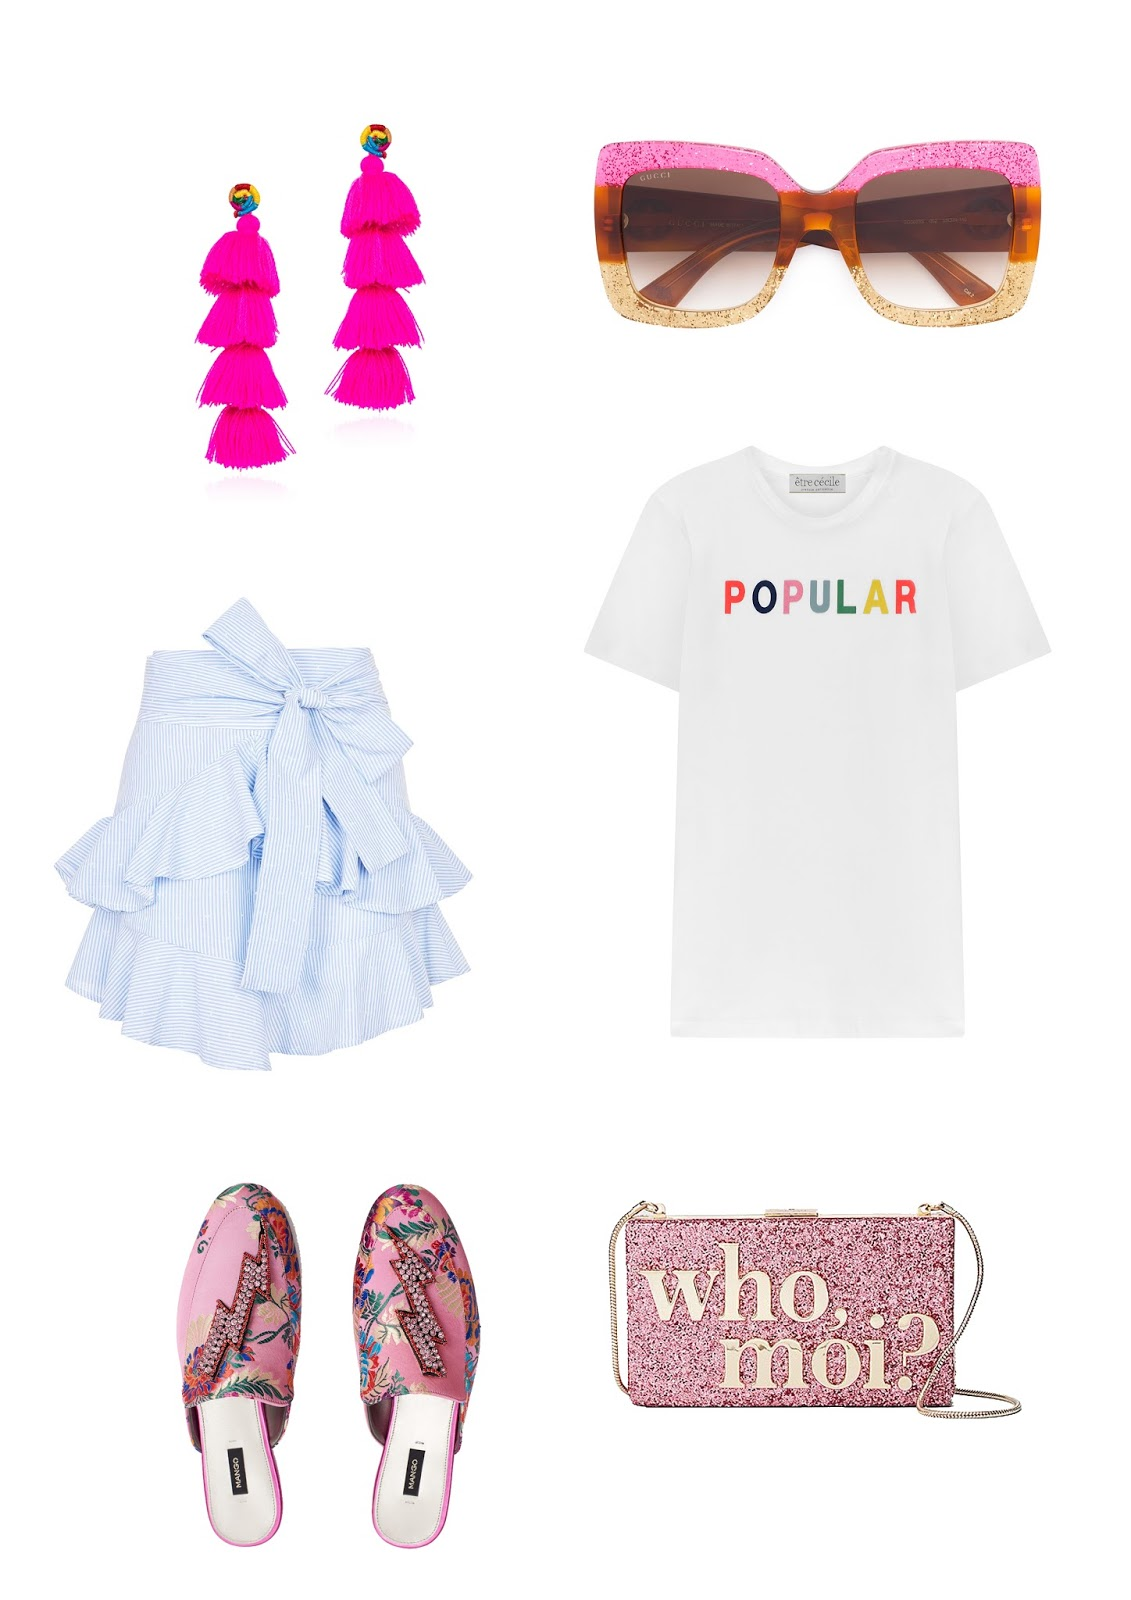 gucci sunglasses, sunglasses, pom pom earrings, kate spade bag, ruffle skirt, topshop, mango, shoes, slides, thunder, maximal, popular, t shirt, logo t shirt, etre cecile,